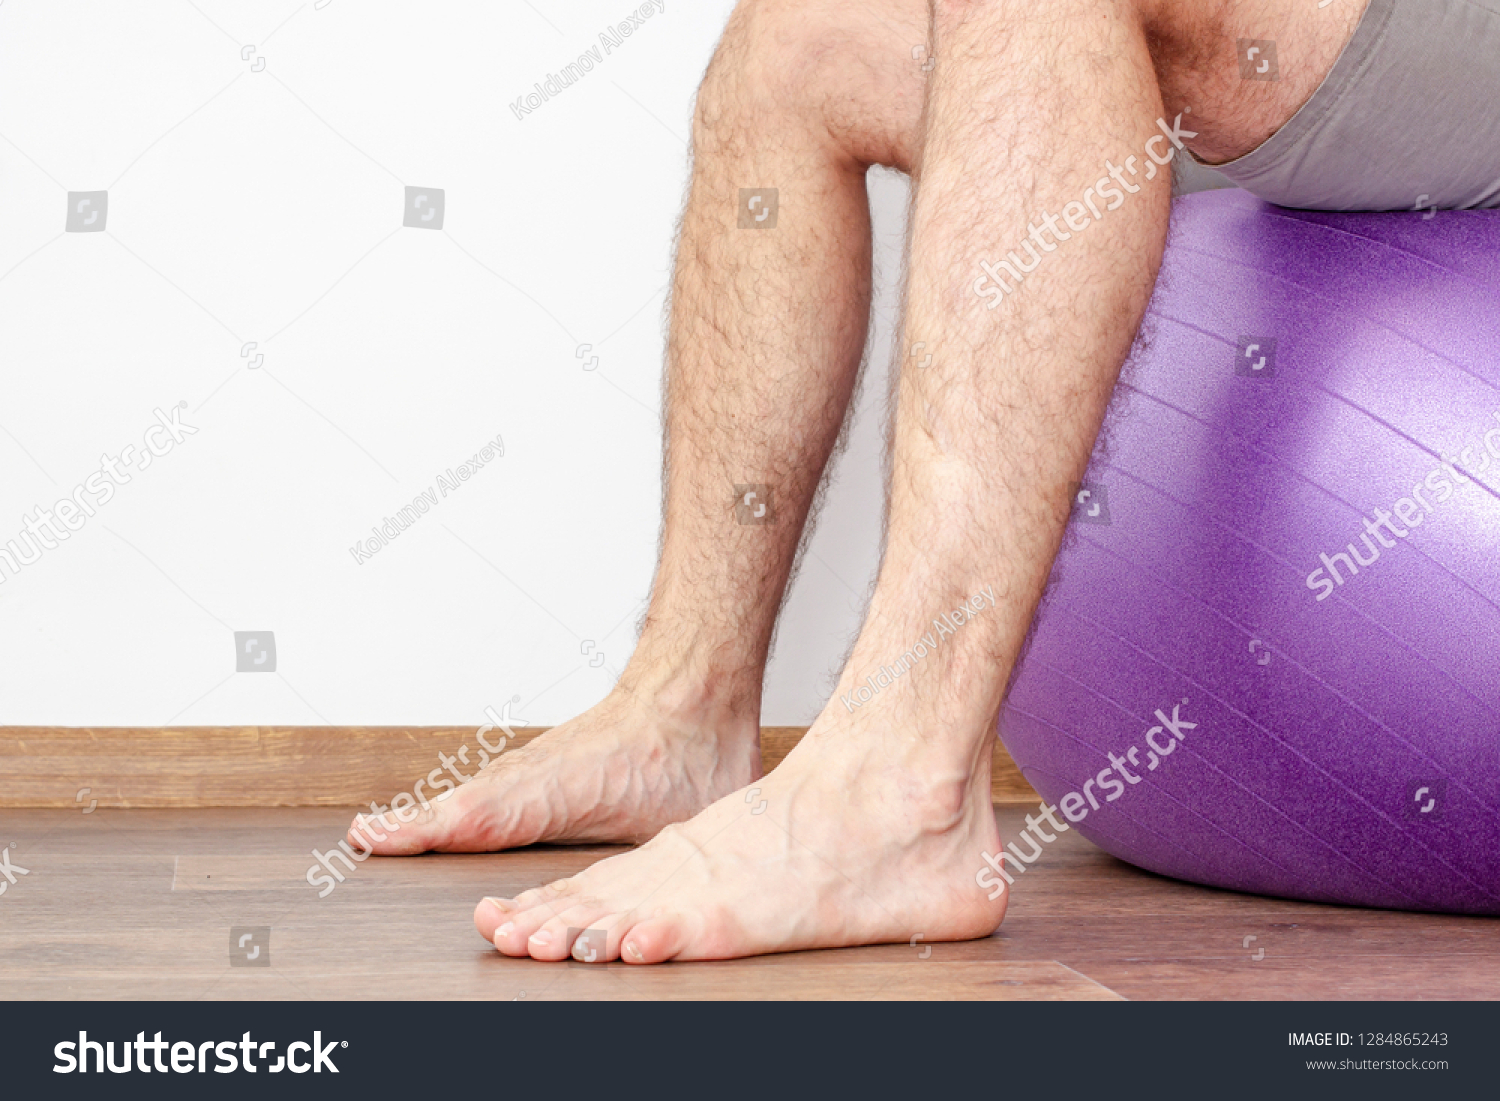 Man with hairy legs sitting on a fitness ball. Close-up. #1284865243